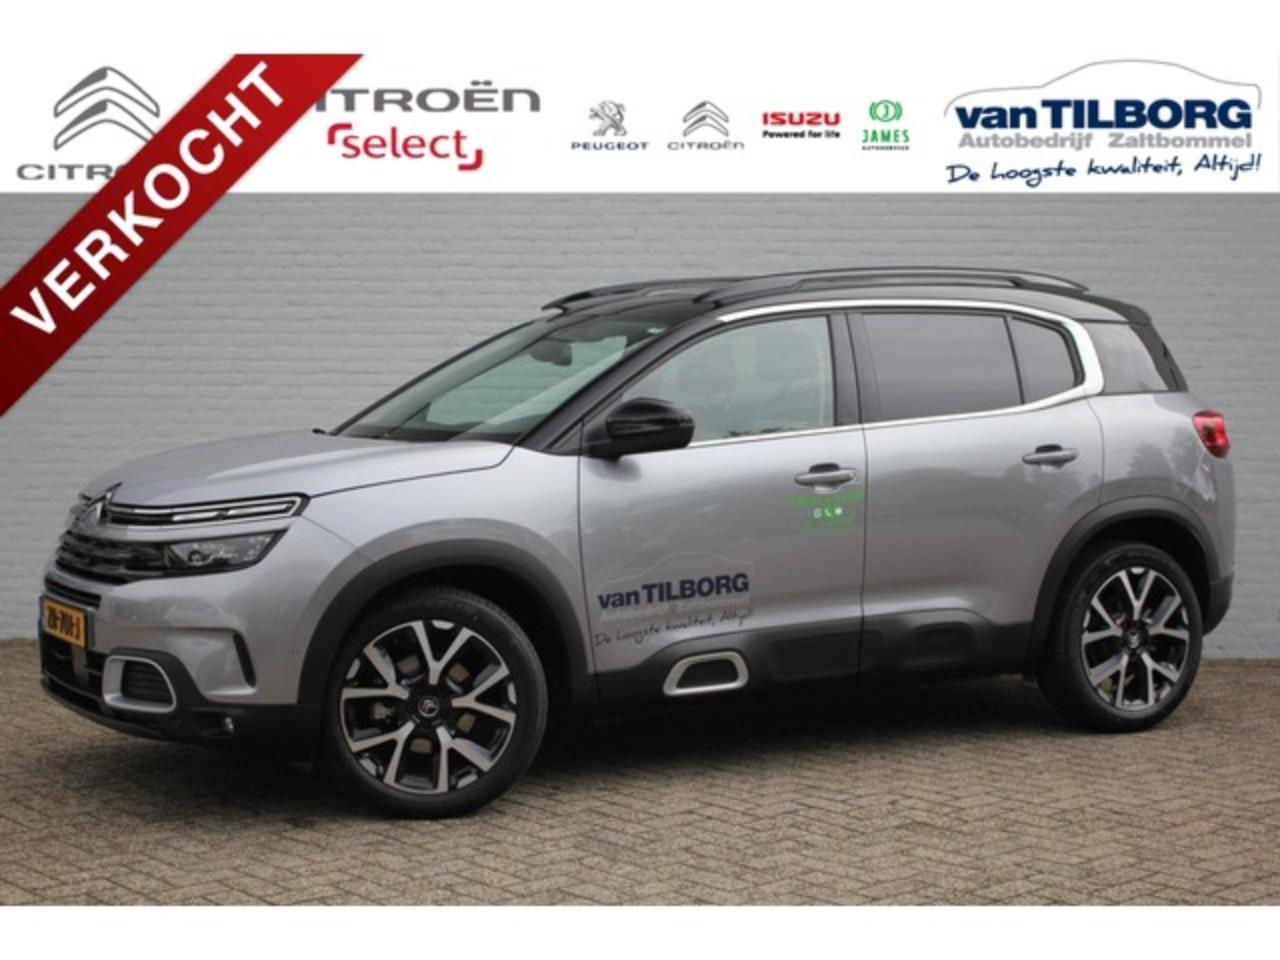 Citroën C5 AIRCROSS SUV 1.2 PureTech 130pk Business Plus | Navi | Schu